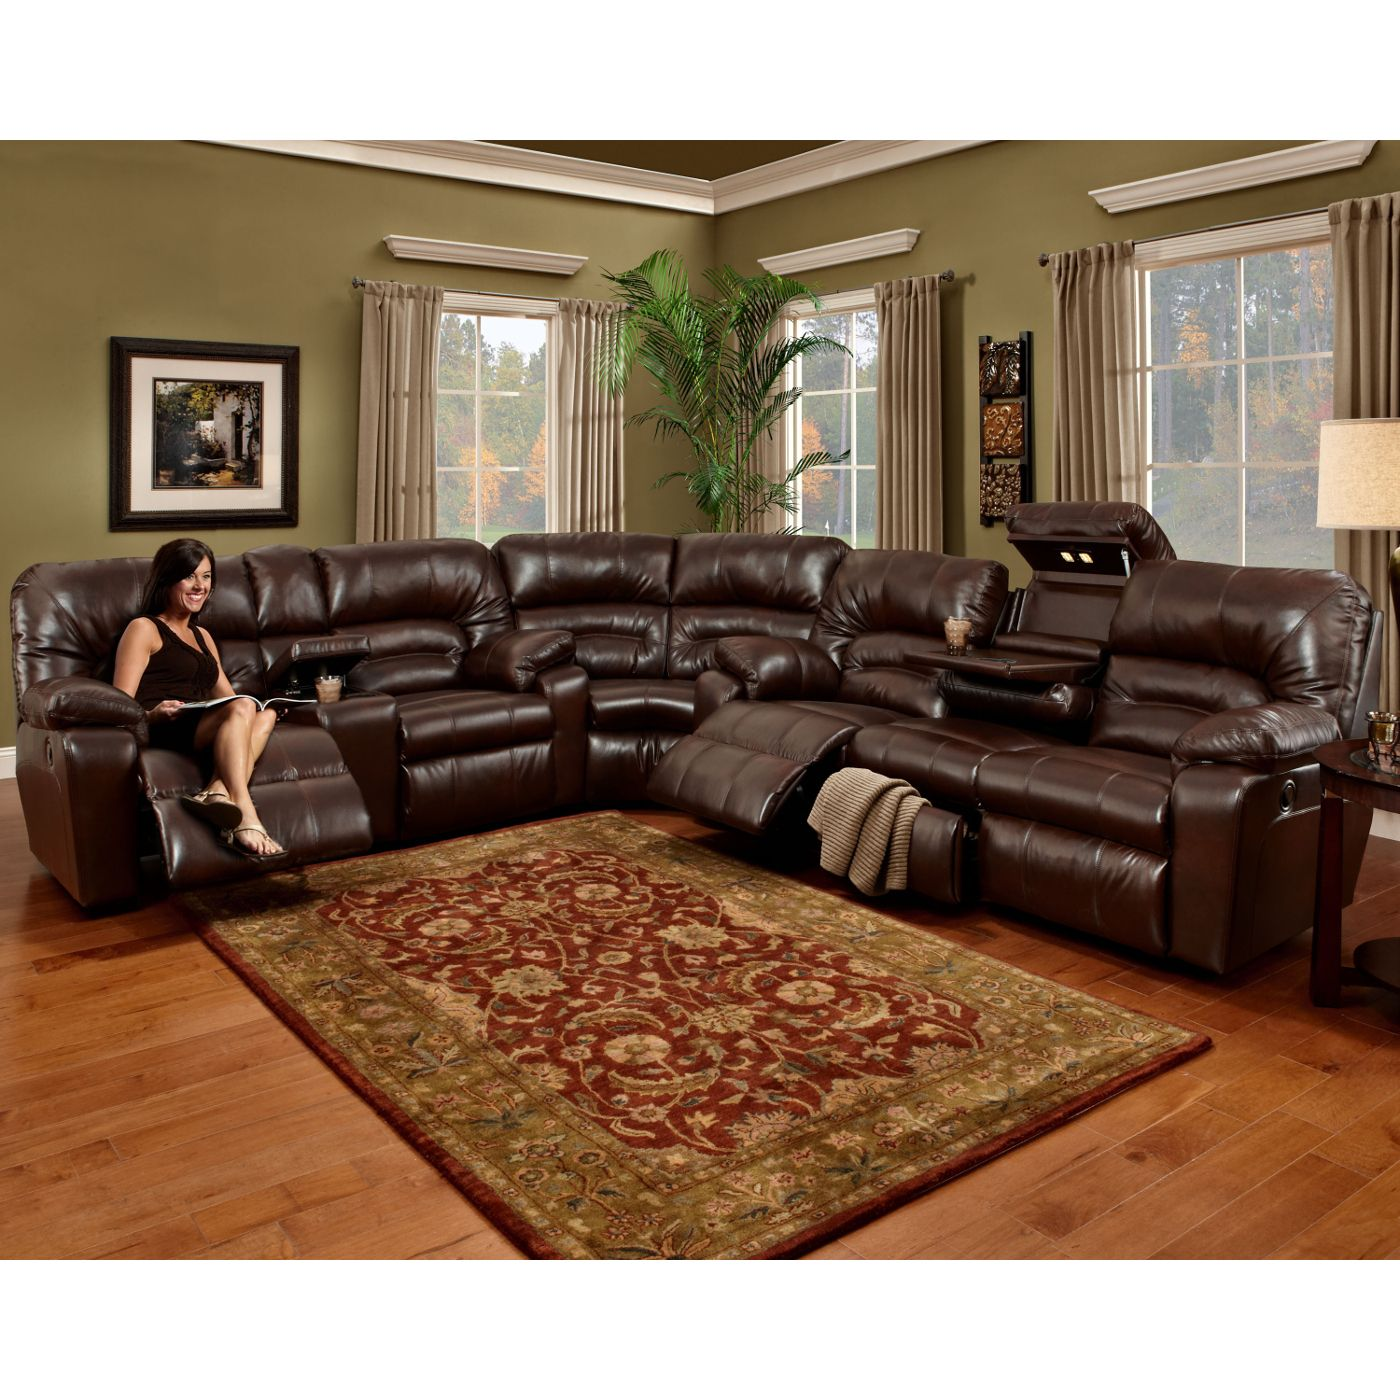 Dakota Living Room Sofa Loveseat Wedge Sectional Rustic